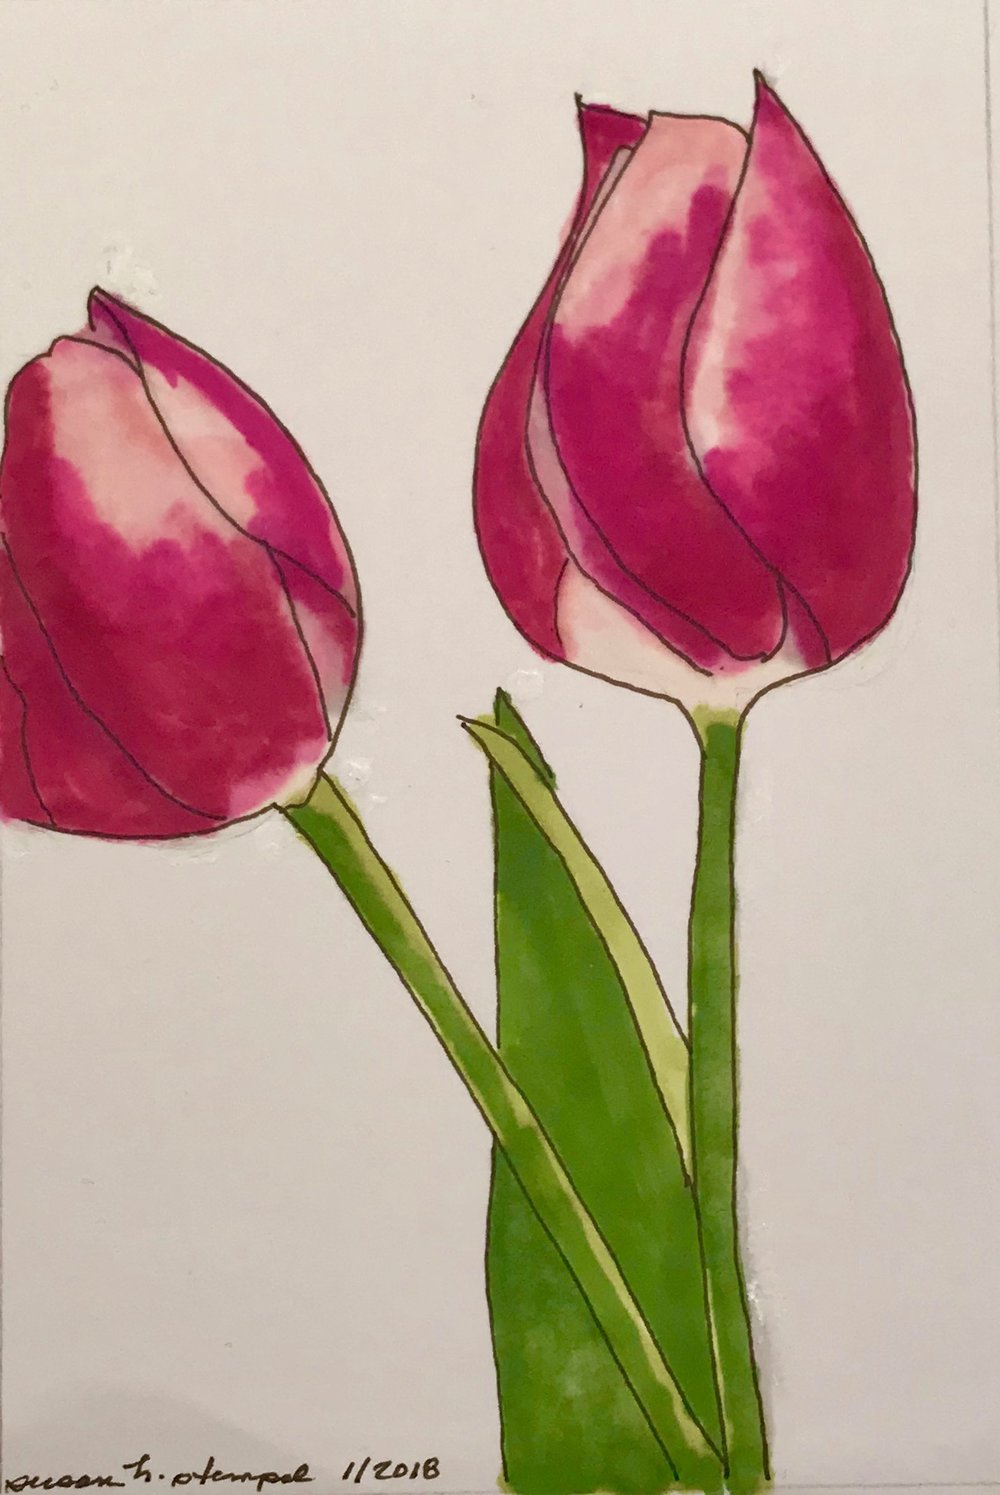 """$300. 5"""" x 7"""" pen & ink on paper. """"Two tulips"""""""